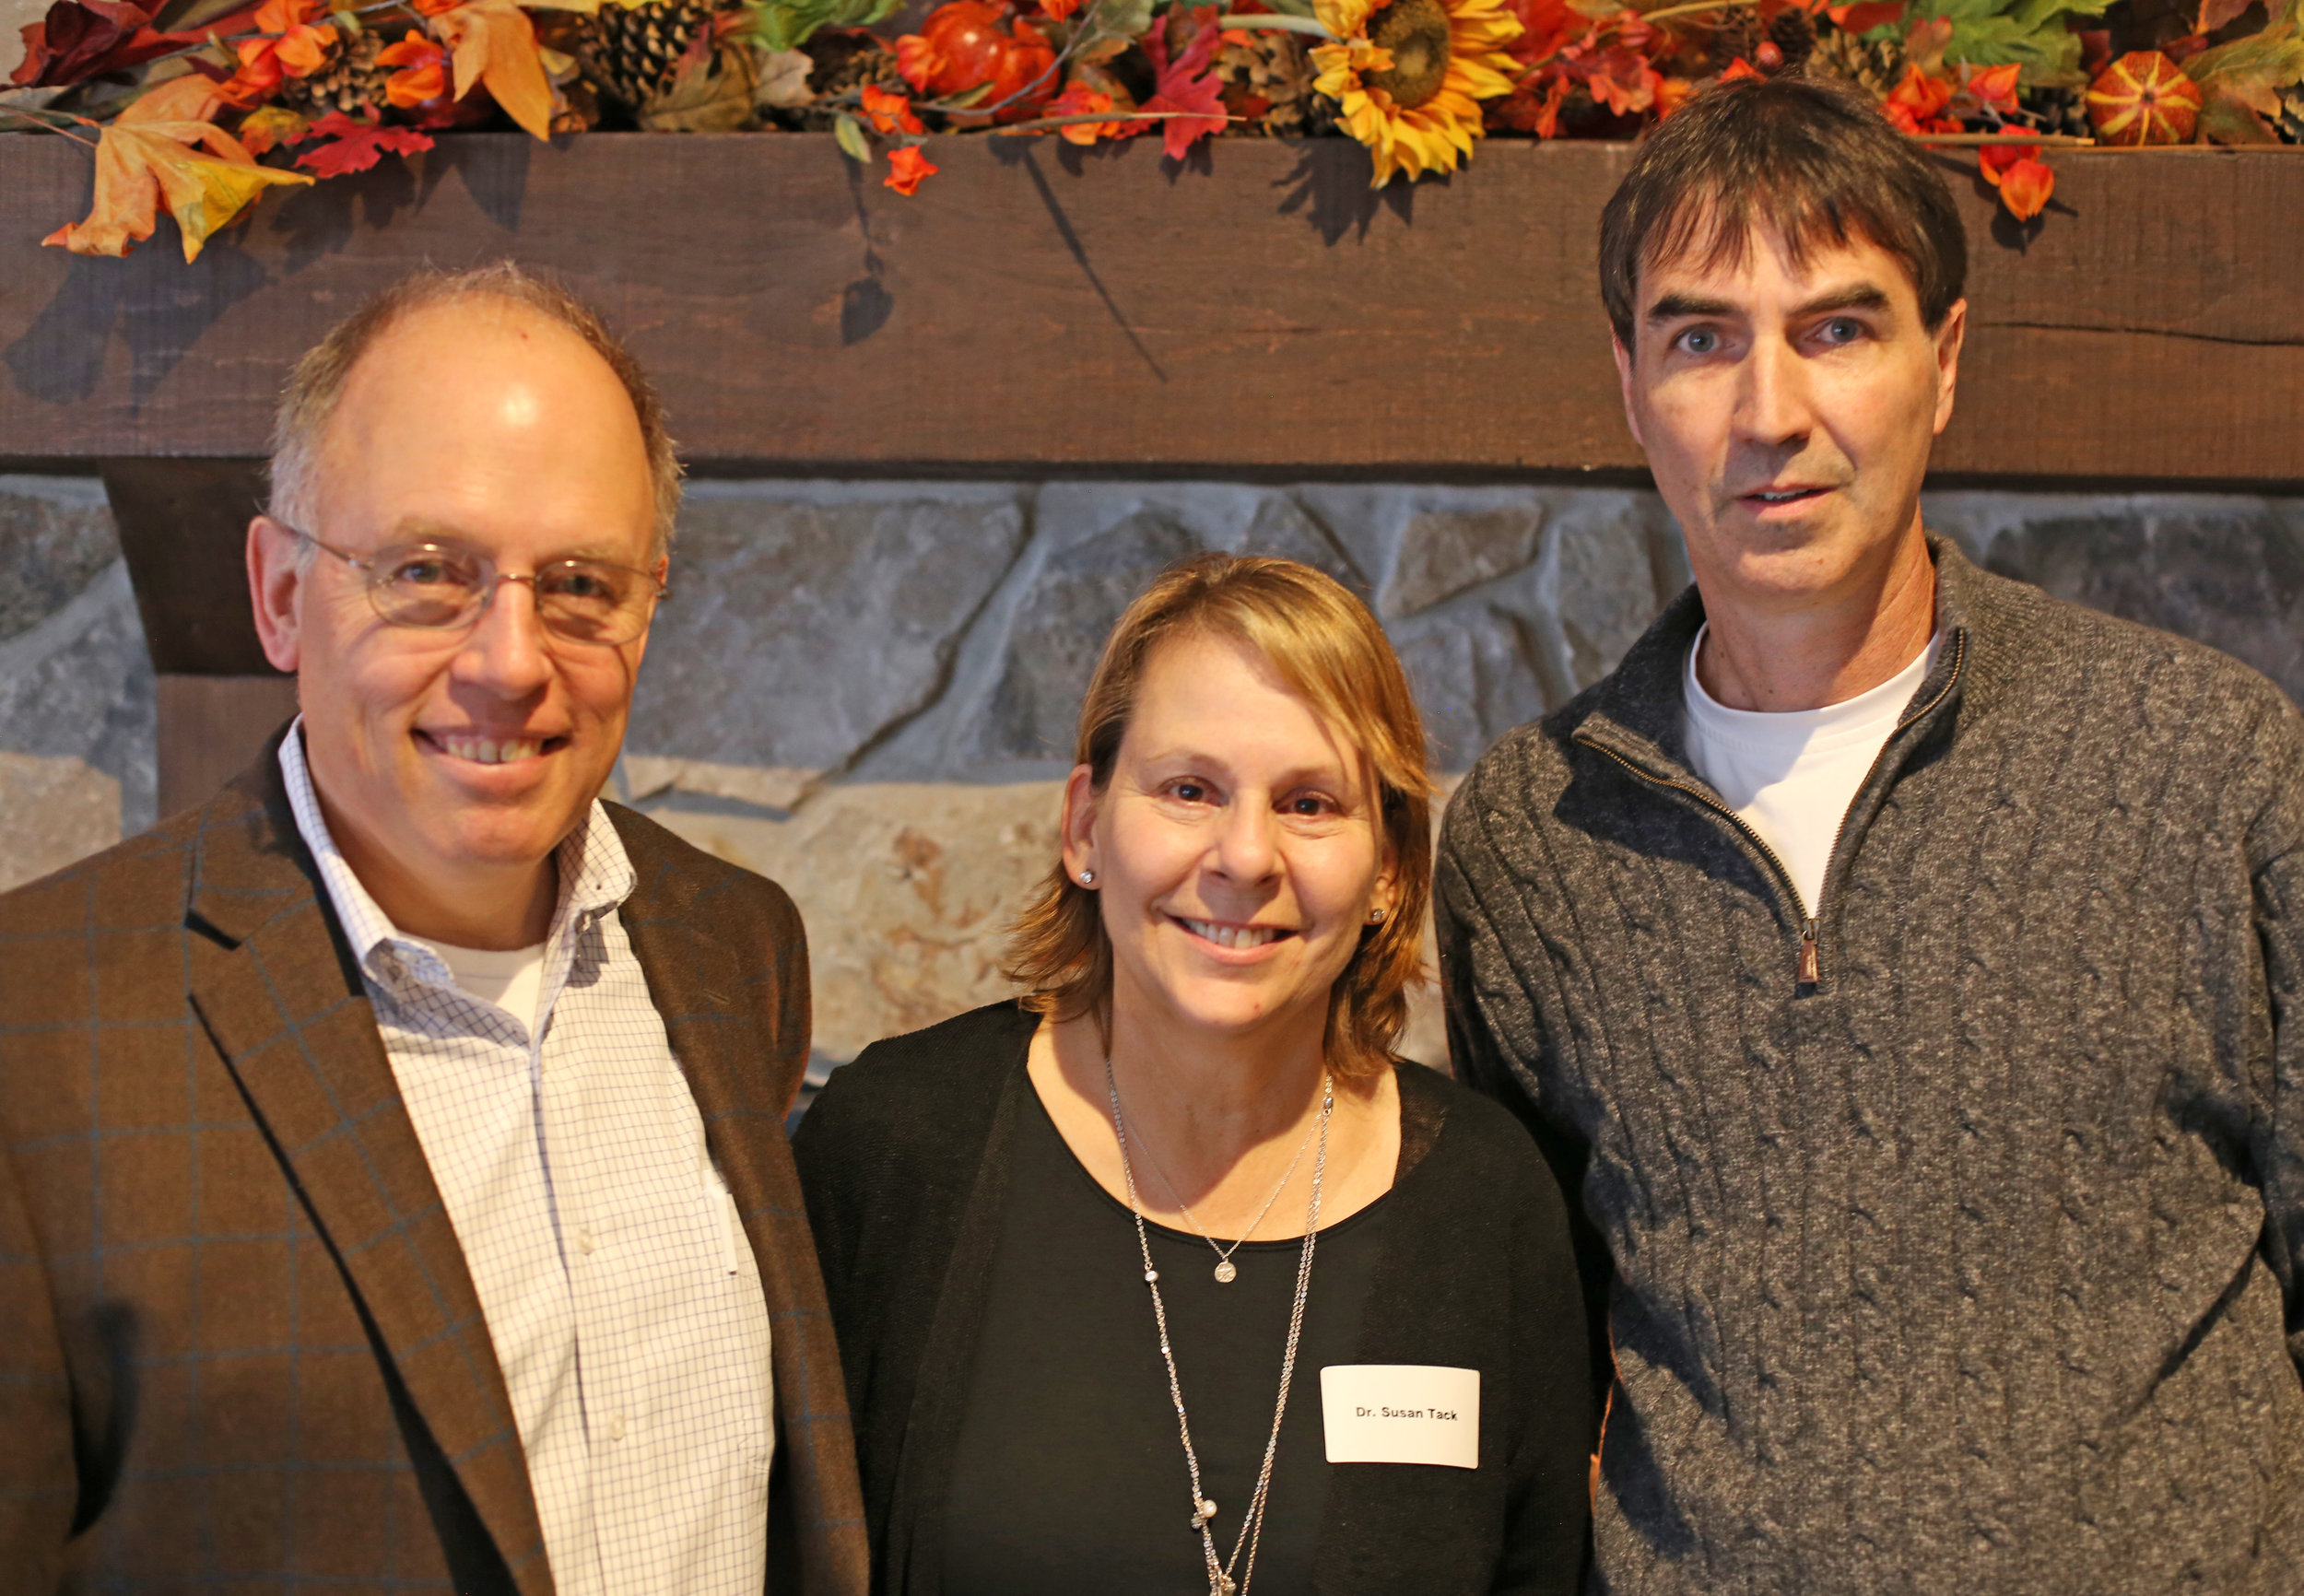 Dr. Doug Tack, Sue Tack, and Bill Byrne